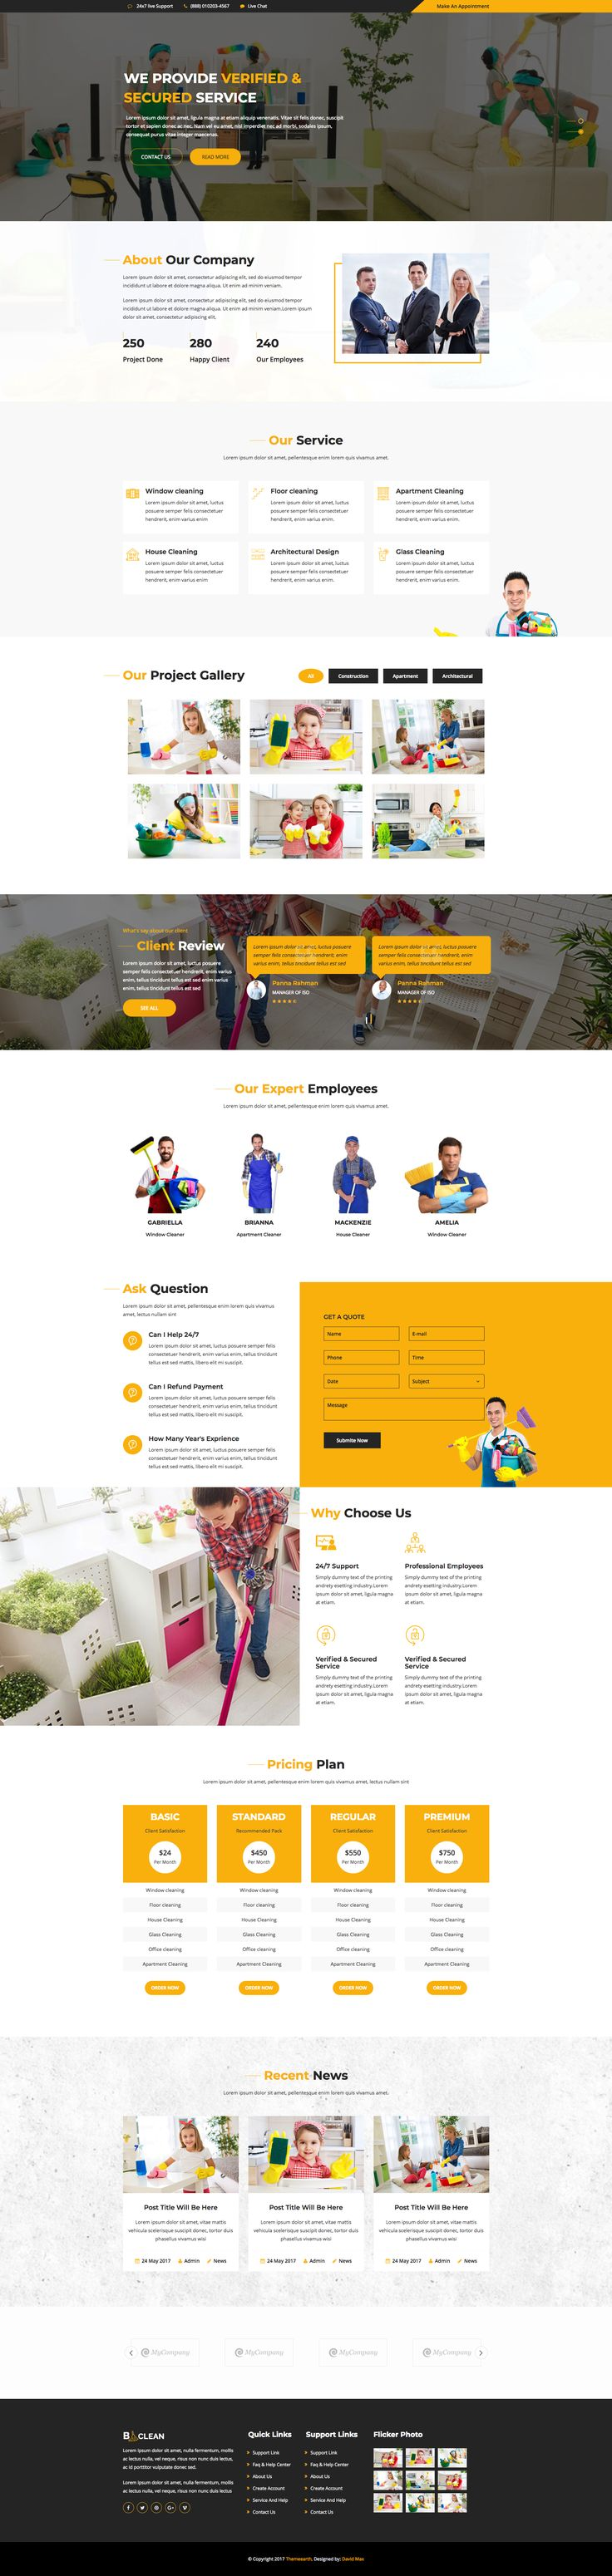 bClean - Cleaning Service HTML5 Responsive Template build with worlds most popular responsive CSS framework Bootstrap.